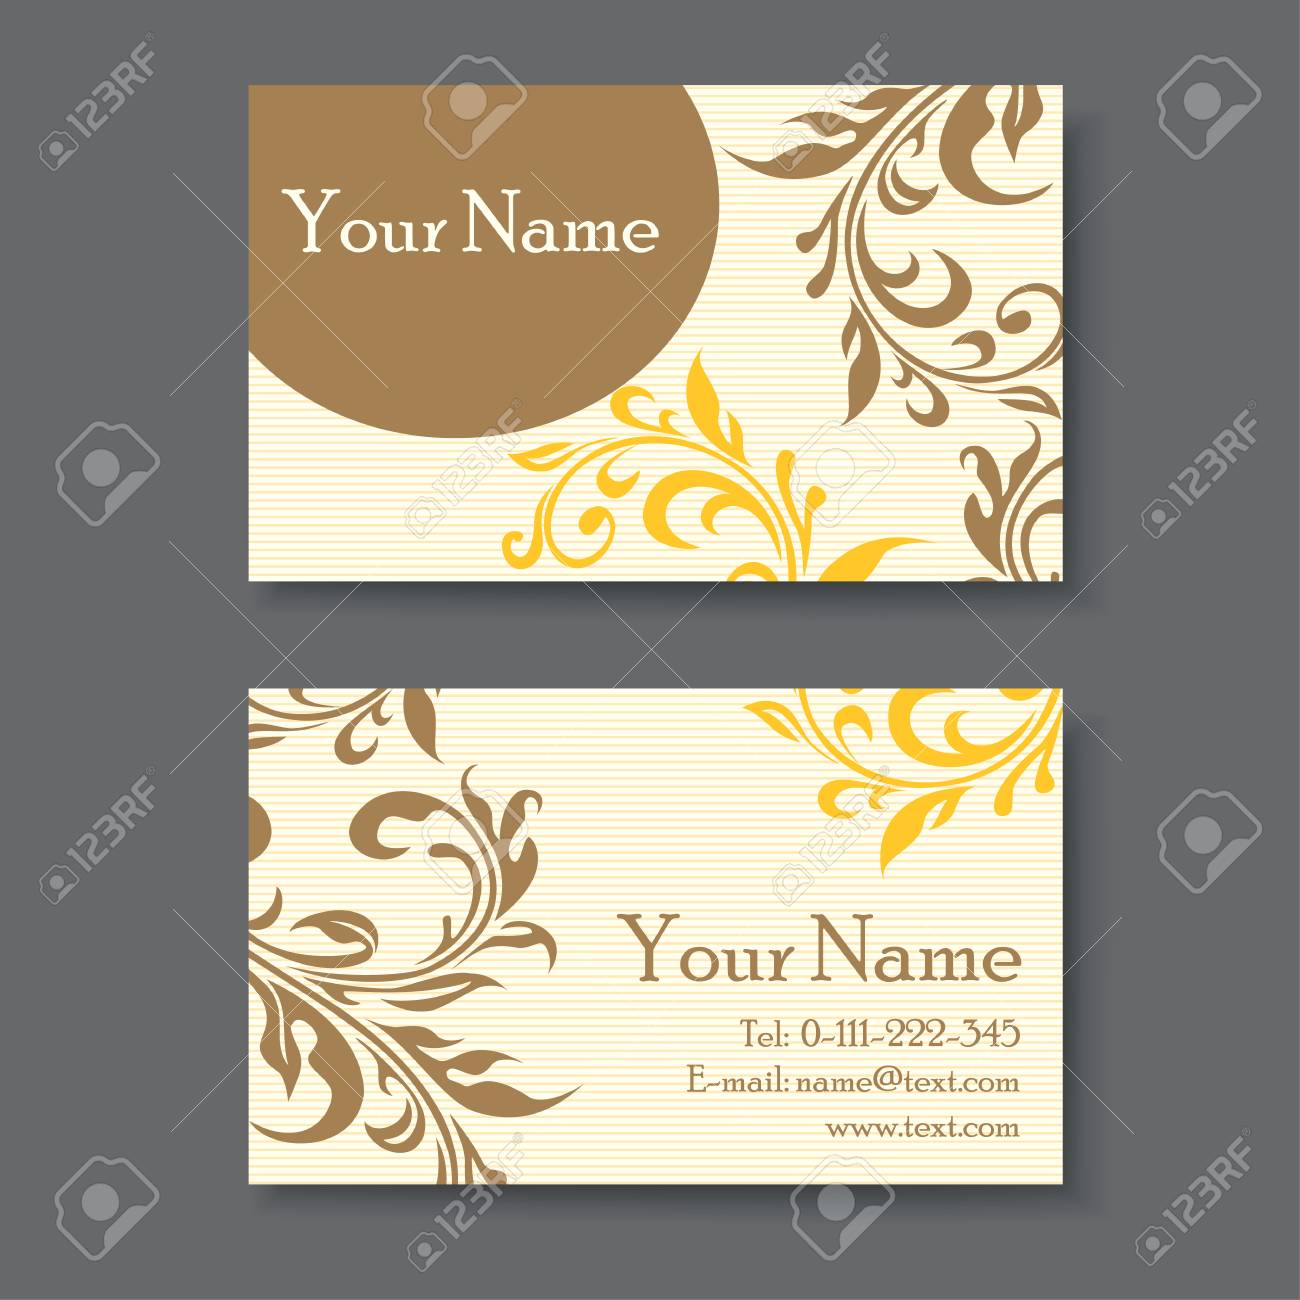 Vintage business card template with floral elements royalty free vector vintage business card template with floral elements maxwellsz